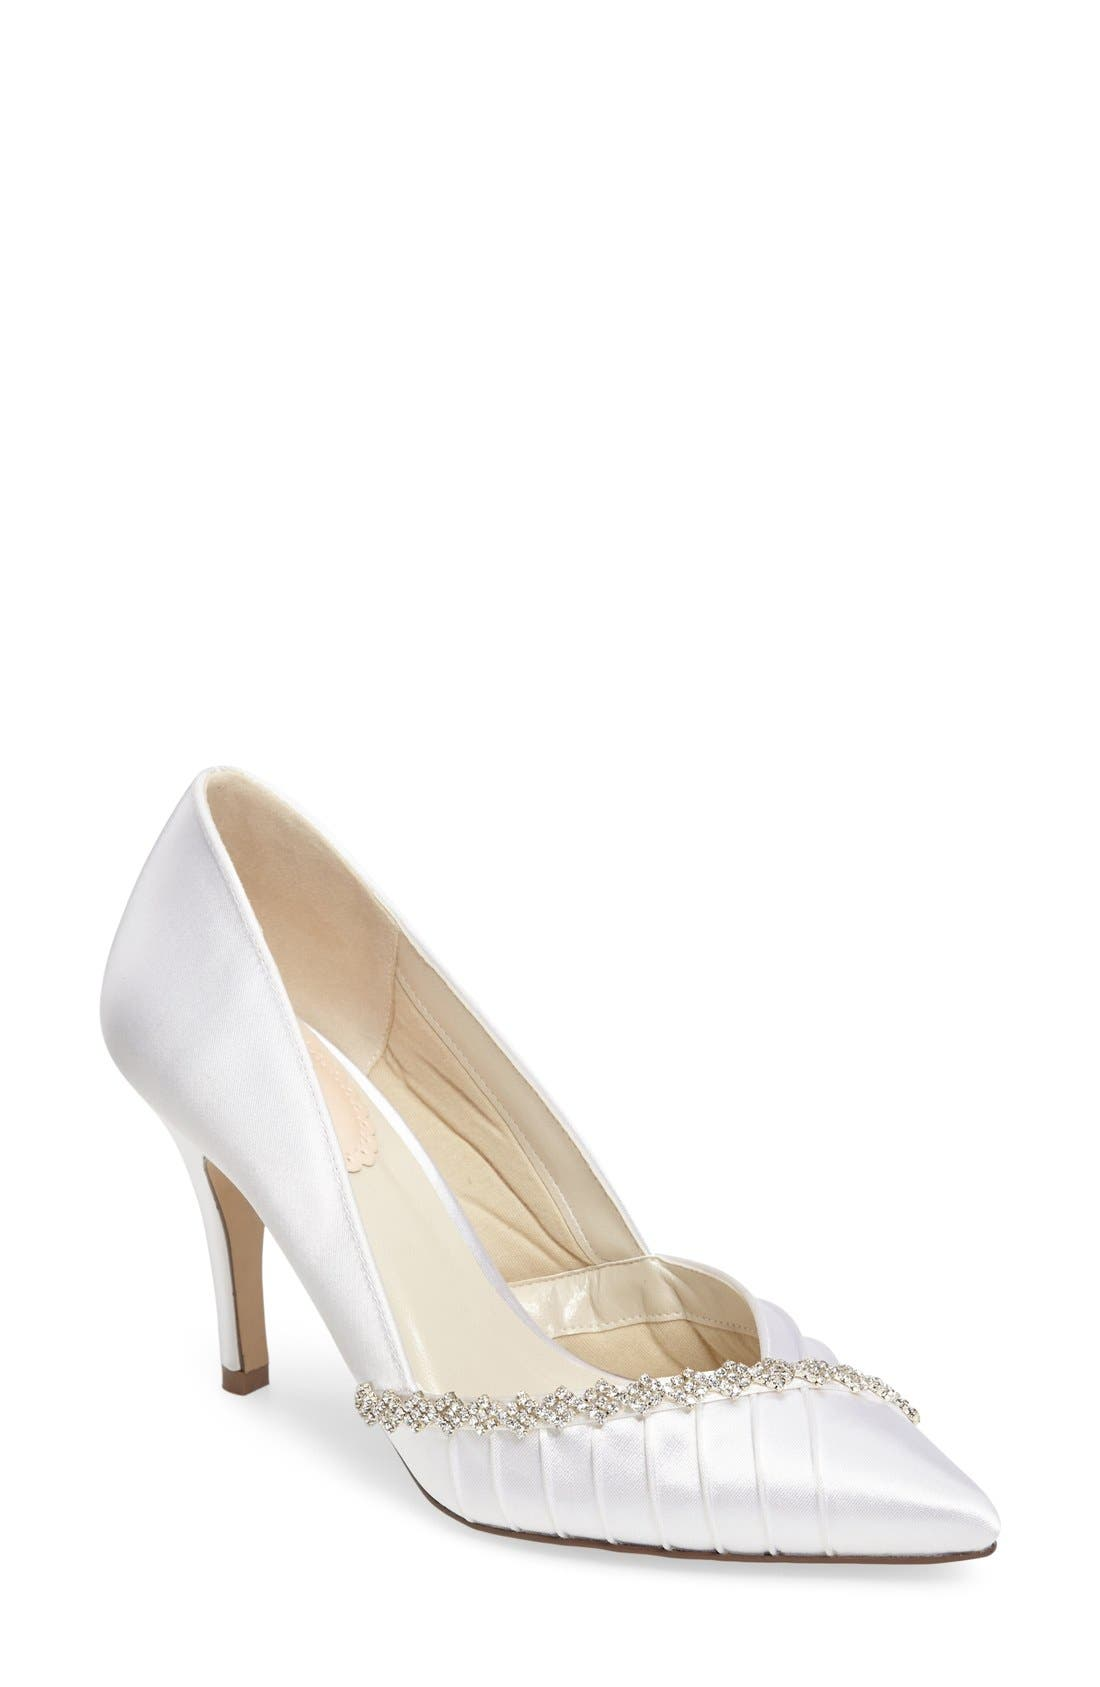 Union Crystal Embellished Pointy Toe Pump,                             Main thumbnail 1, color,                             100